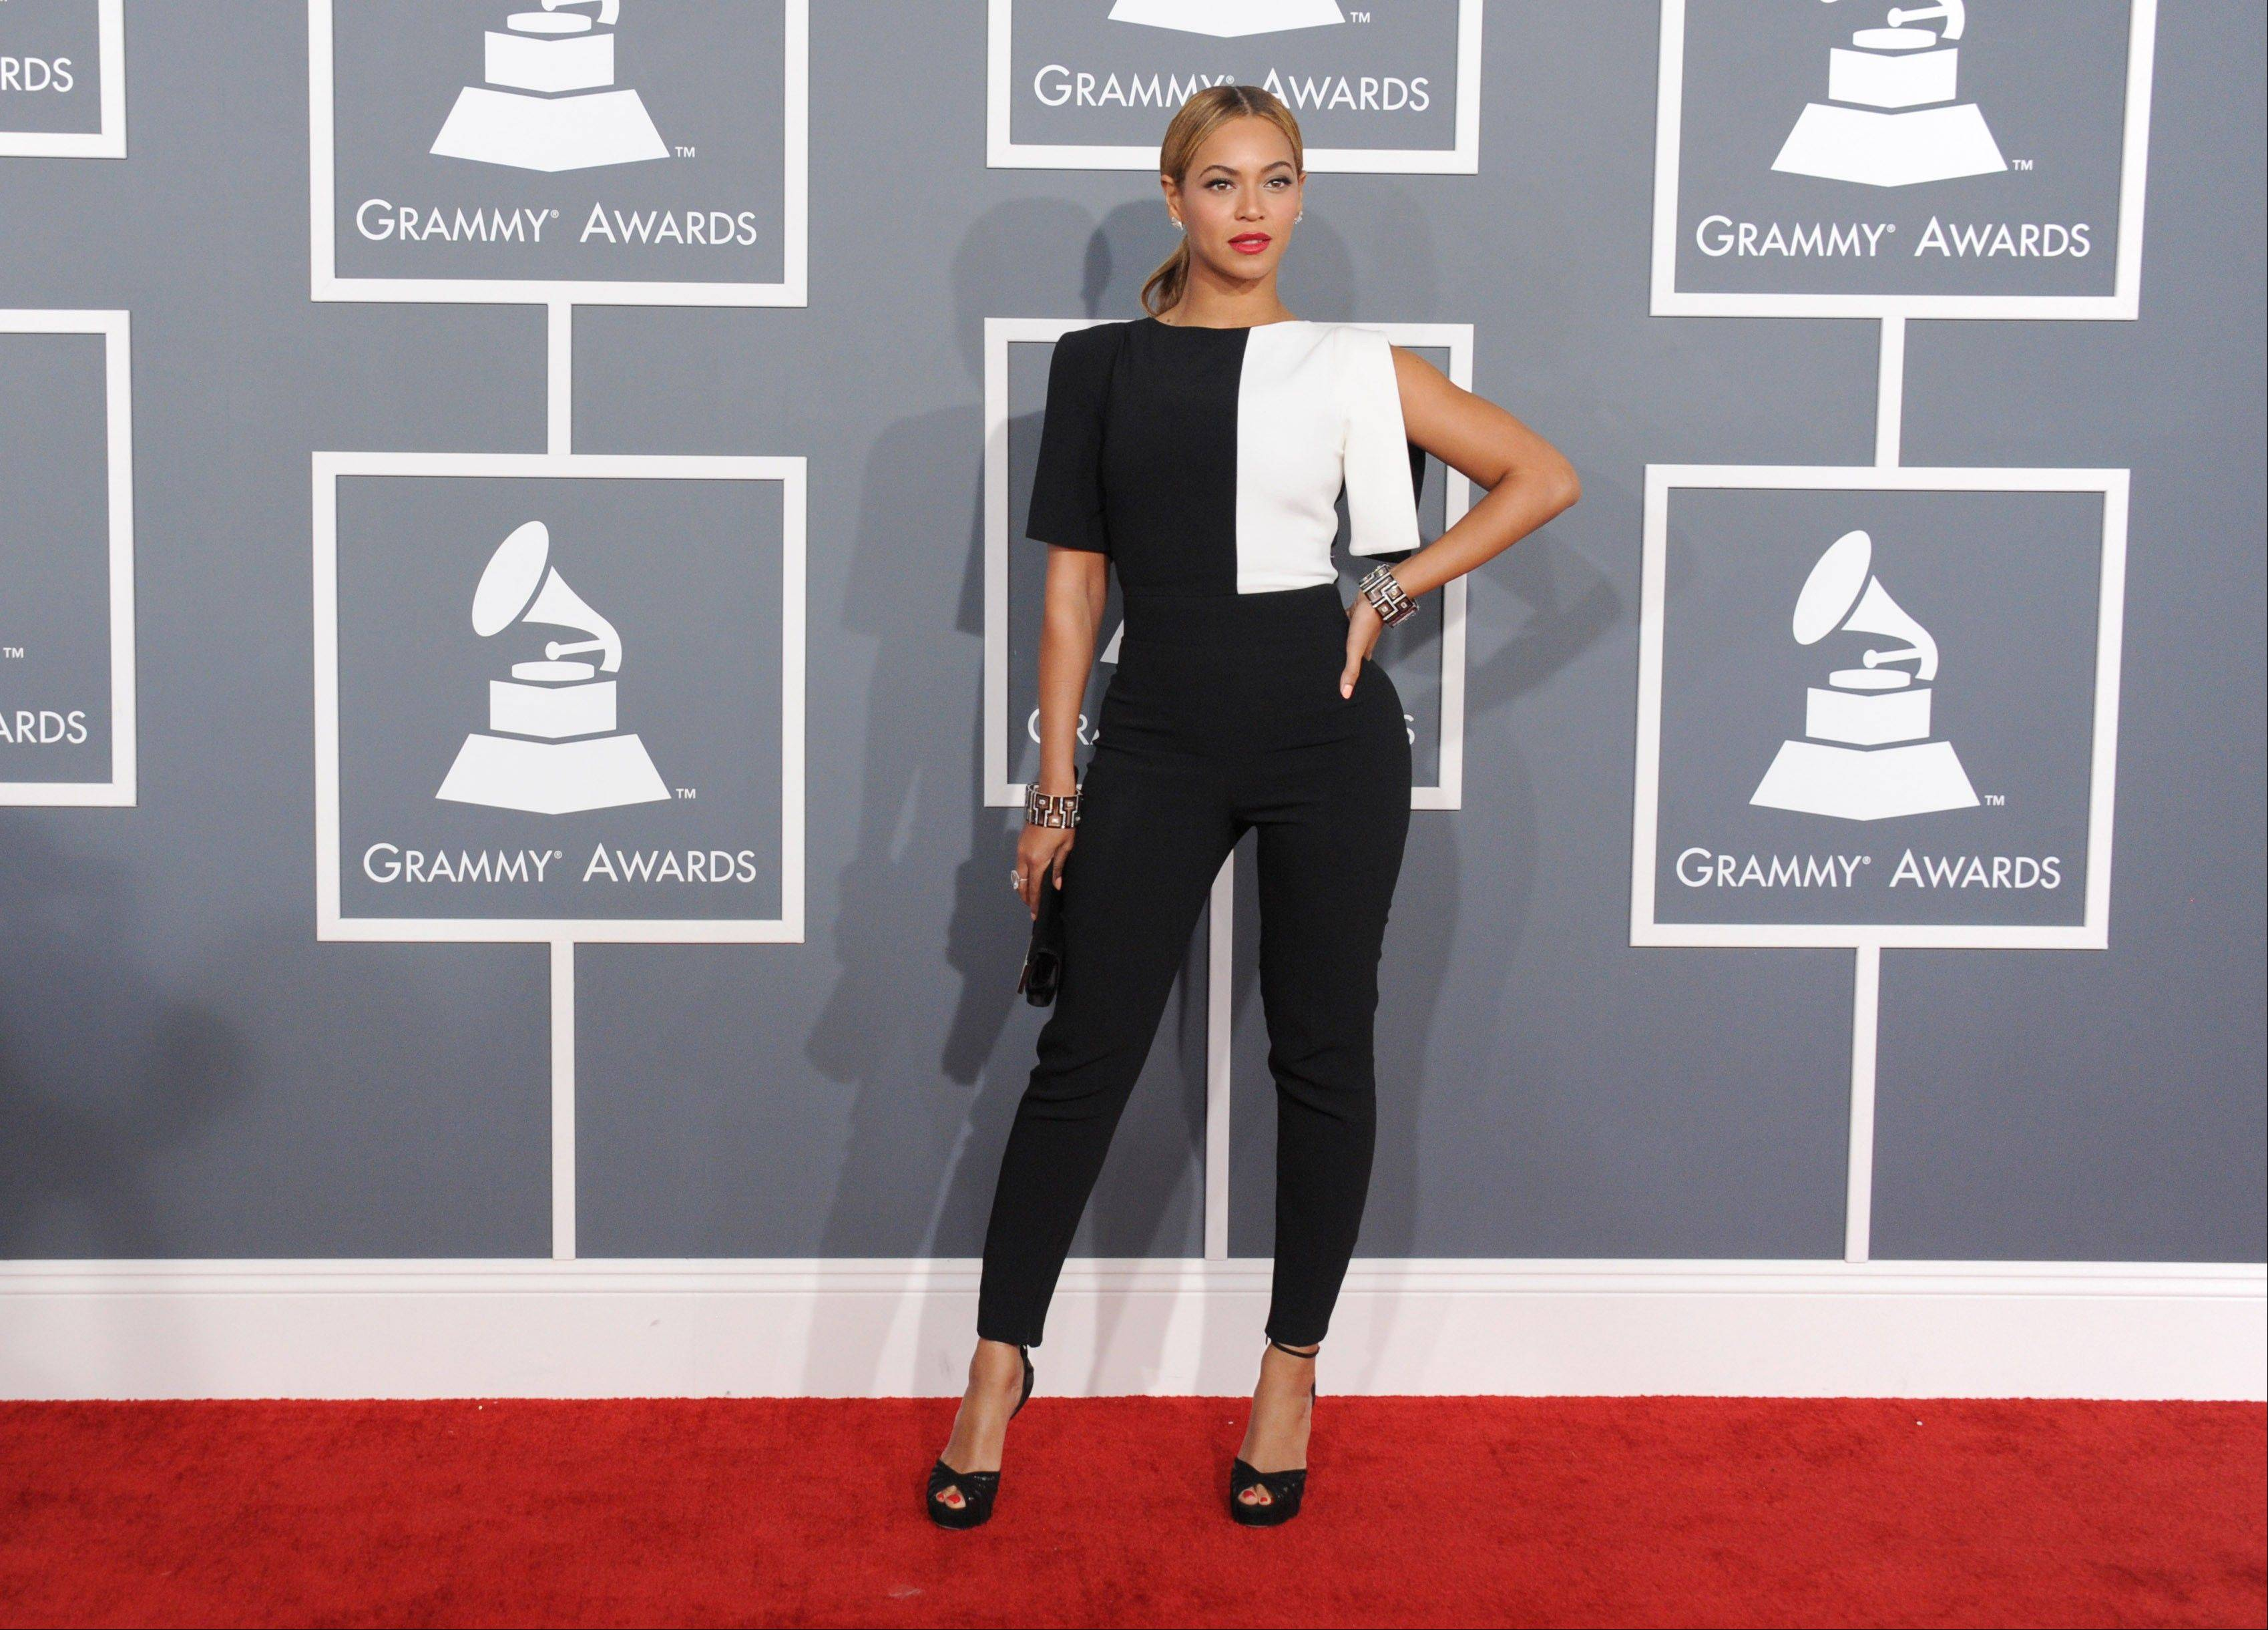 Beyonc� arrives at the 55th annual Grammy Awards on Sunday in Los Angeles.